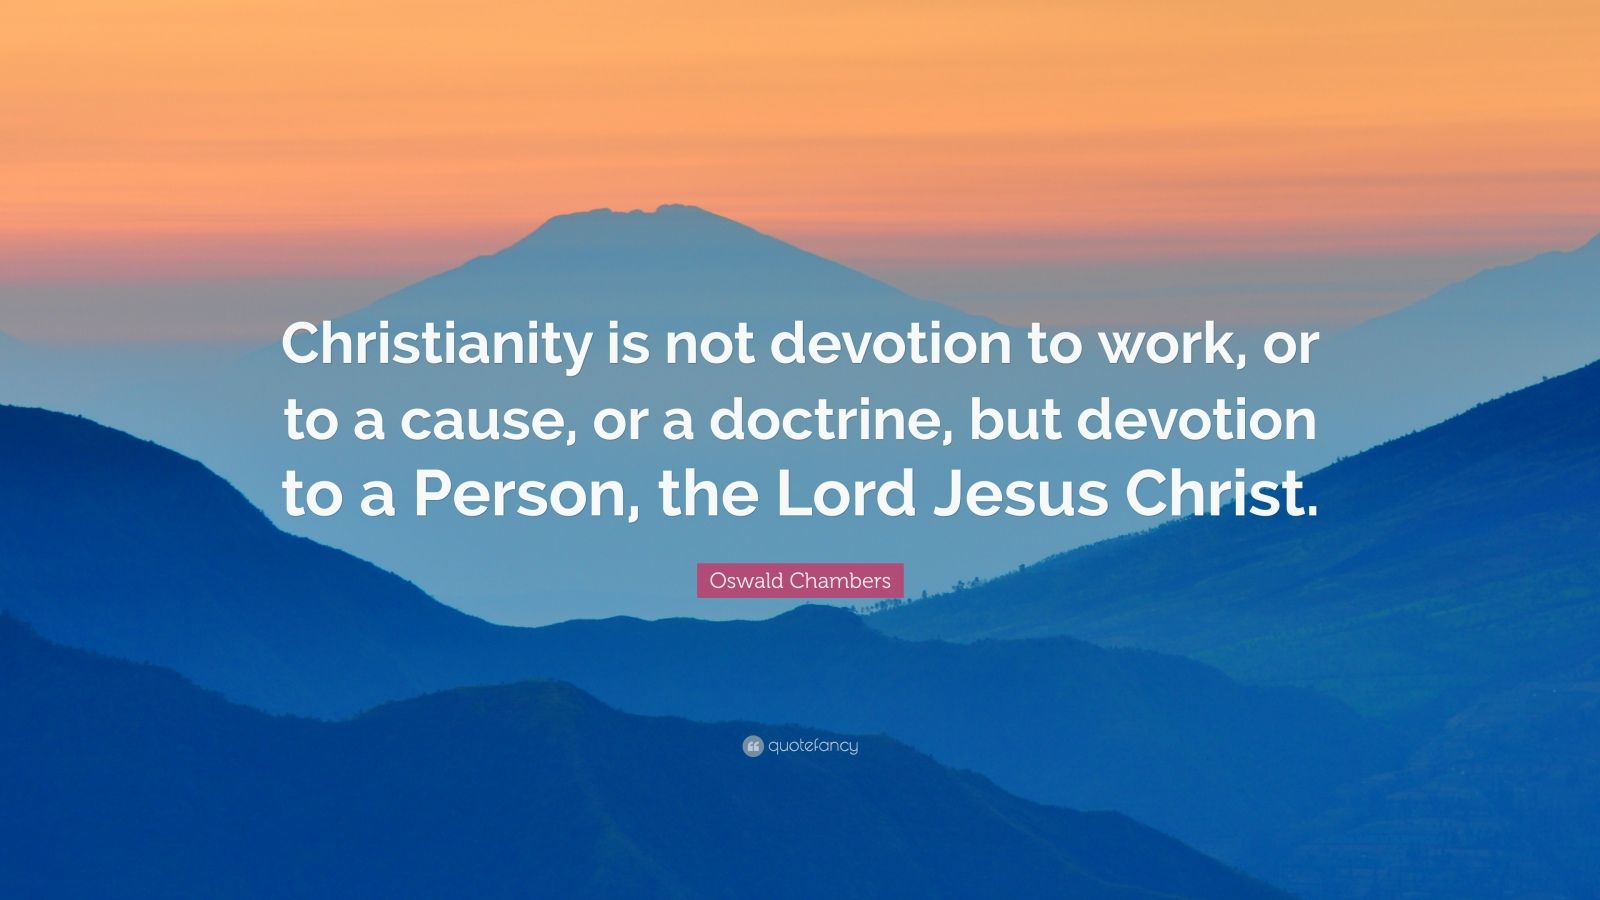 """Oswald Chambers Quote: """"Christianity is not devotion to work, or to a cause, or a doctrine, but devotion to a Person, the Lord Jesus Christ."""""""